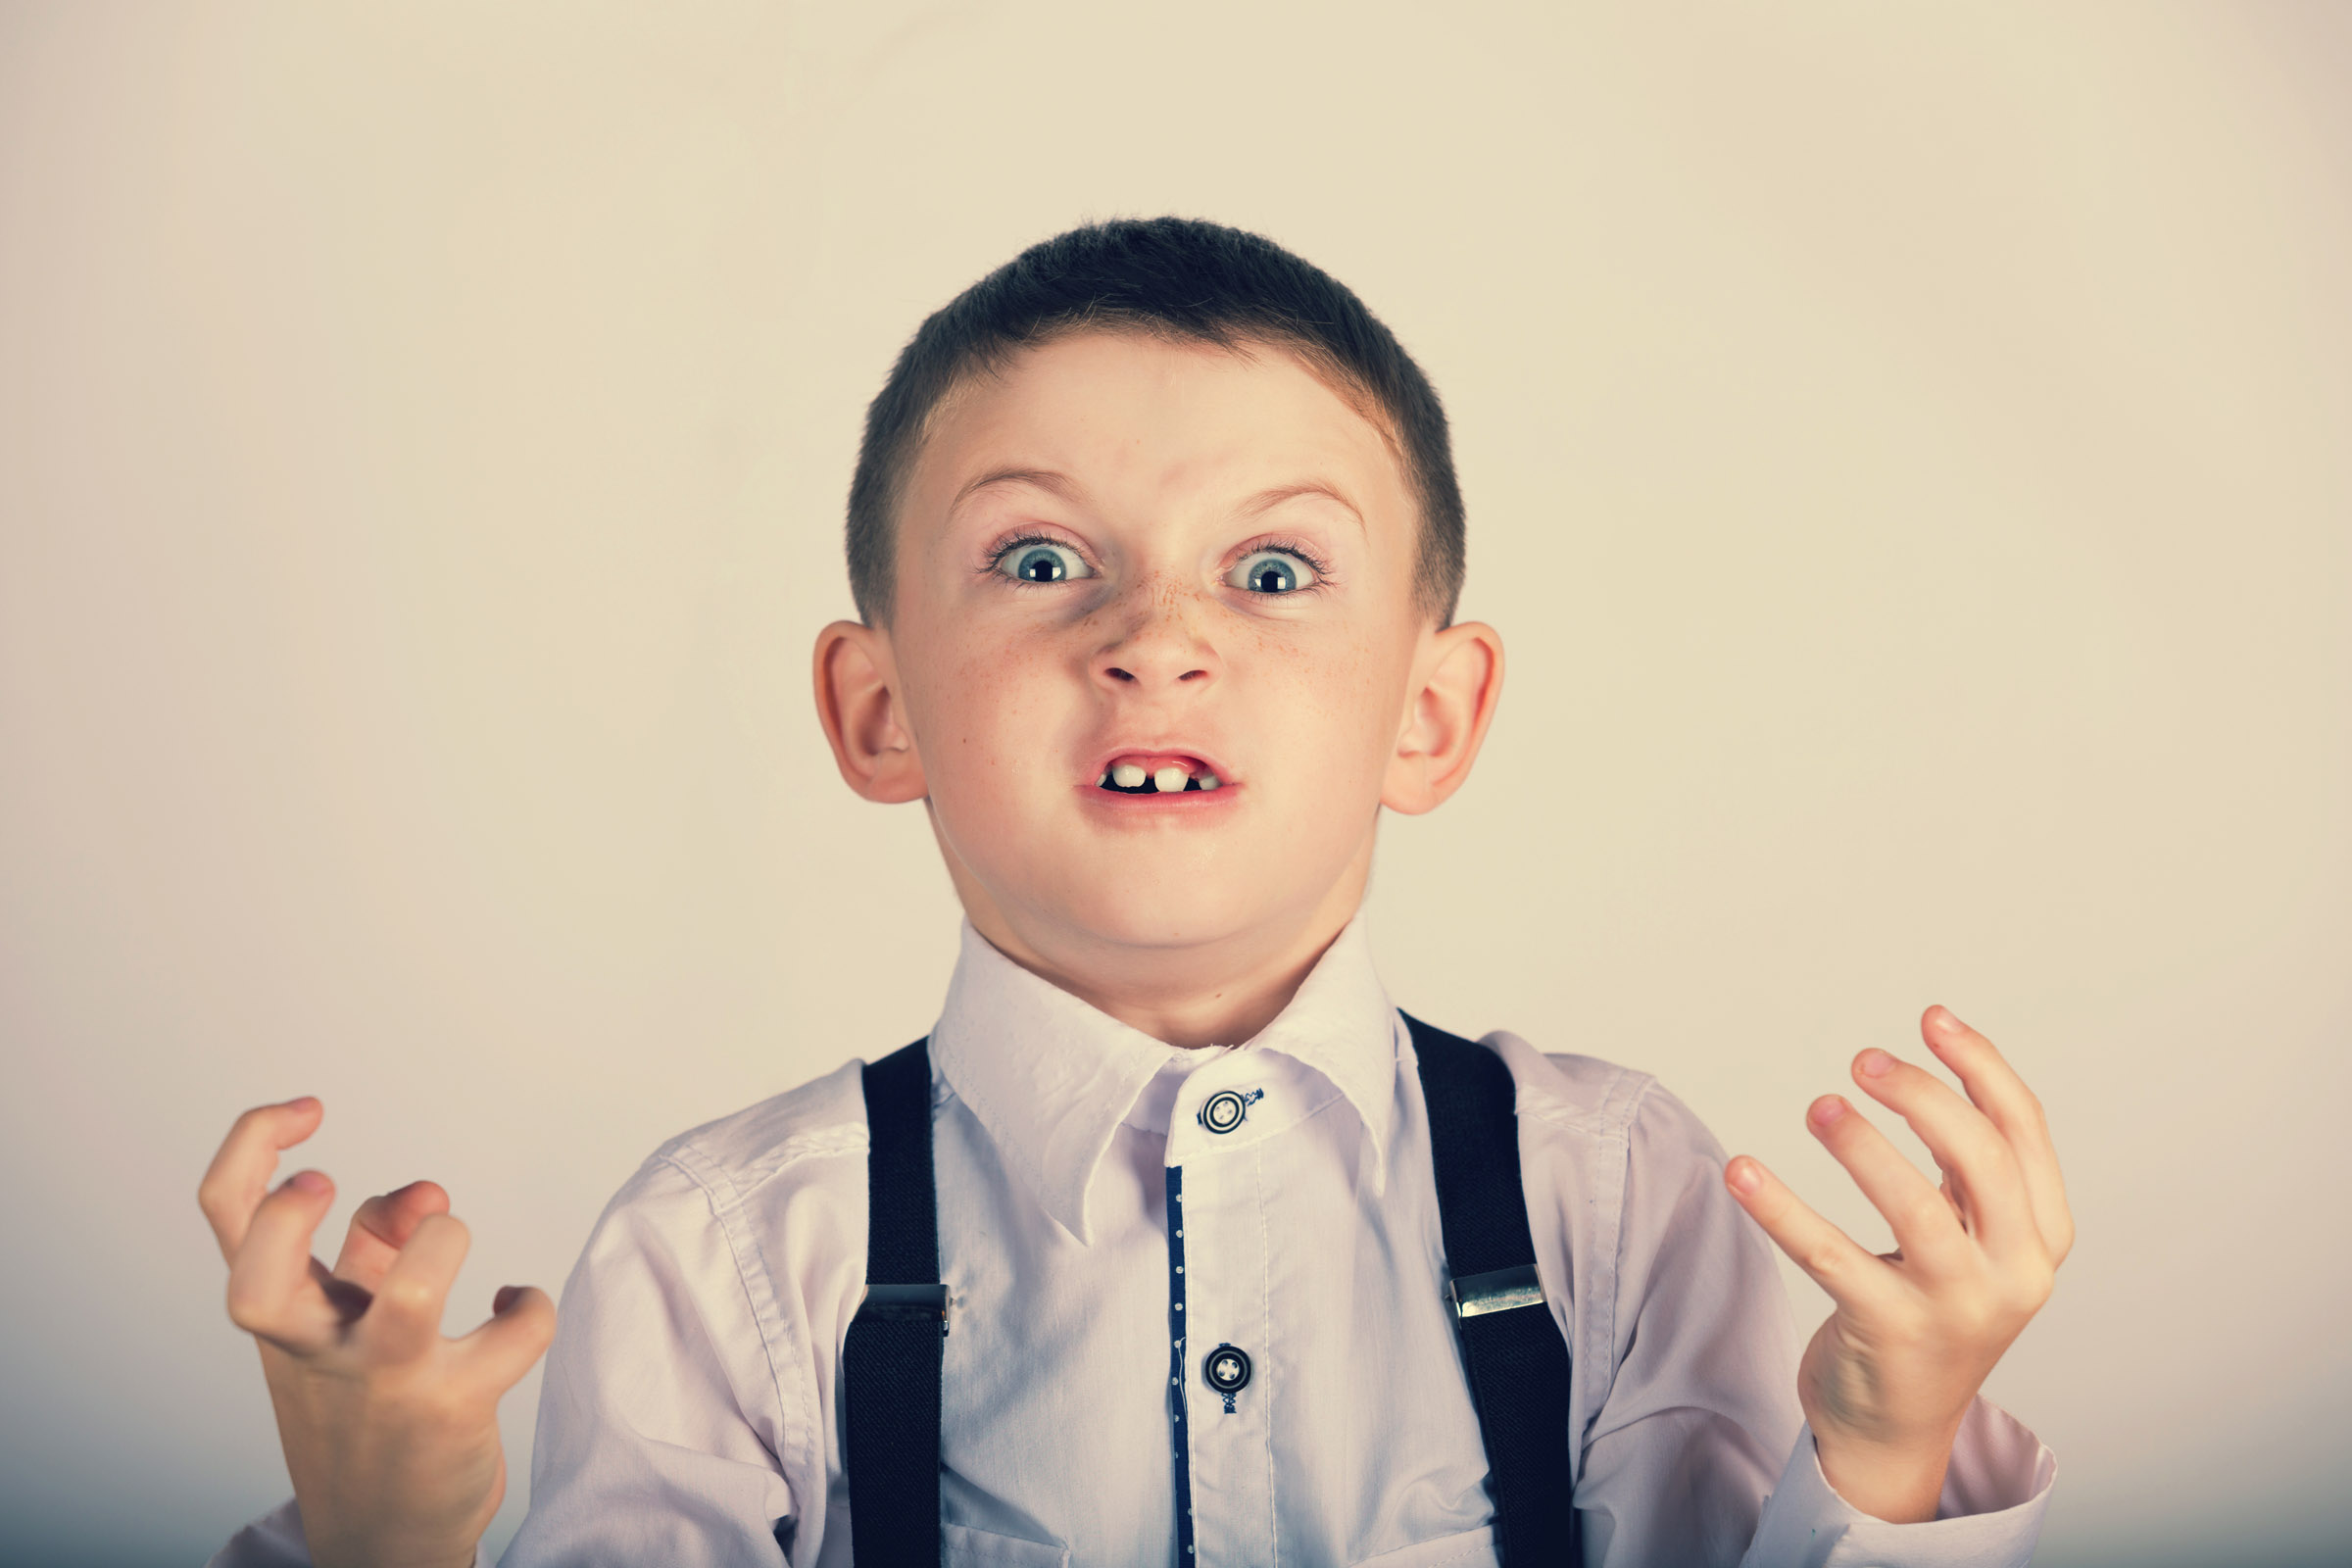 WEB-STRESSED-IRRITATED-BOY-ANGRY-shutterstock_351910007-CebotariN-AI